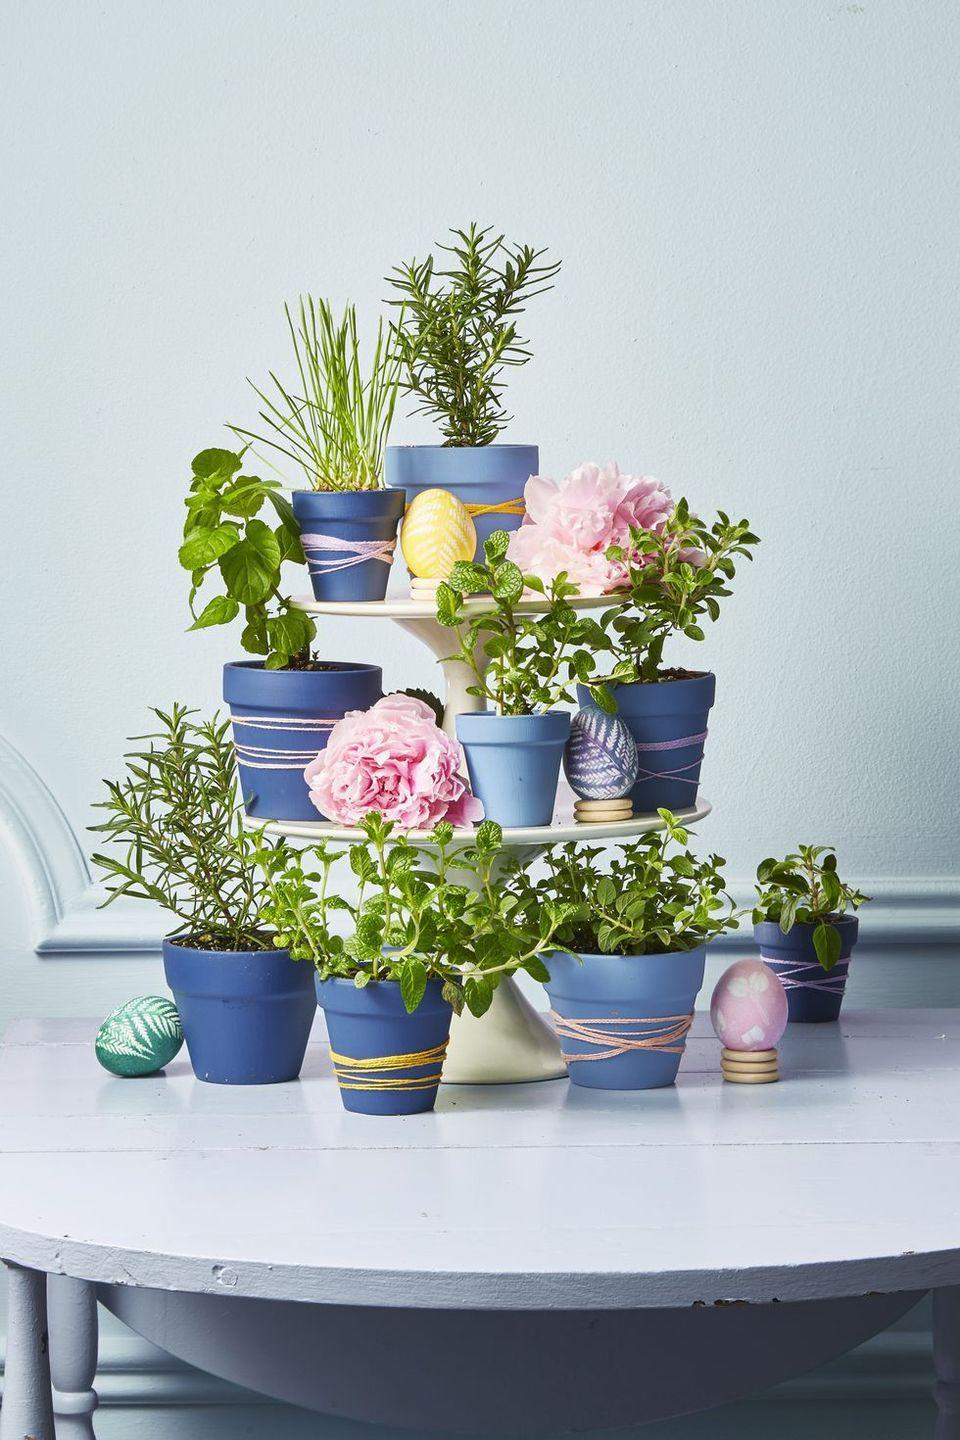 """<p>Why have one flower vase for your Easter spread when you can have a dozen? Transfer plants — succulents, greens, or fresh blooms — into painted pots wrapped in embroidery thread. Arrange the pots on stacked cake stands for a standout table topper.</p><p><a class=""""link rapid-noclick-resp"""" href=""""https://www.amazon.com/My-Urban-Crafts-Small-Terra/dp/B0798C98X7/?tag=syn-yahoo-20&ascsubtag=%5Bartid%7C10055.g.2217%5Bsrc%7Cyahoo-us"""" rel=""""nofollow noopener"""" target=""""_blank"""" data-ylk=""""slk:BUY POTS"""">BUY POTS</a> </p>"""